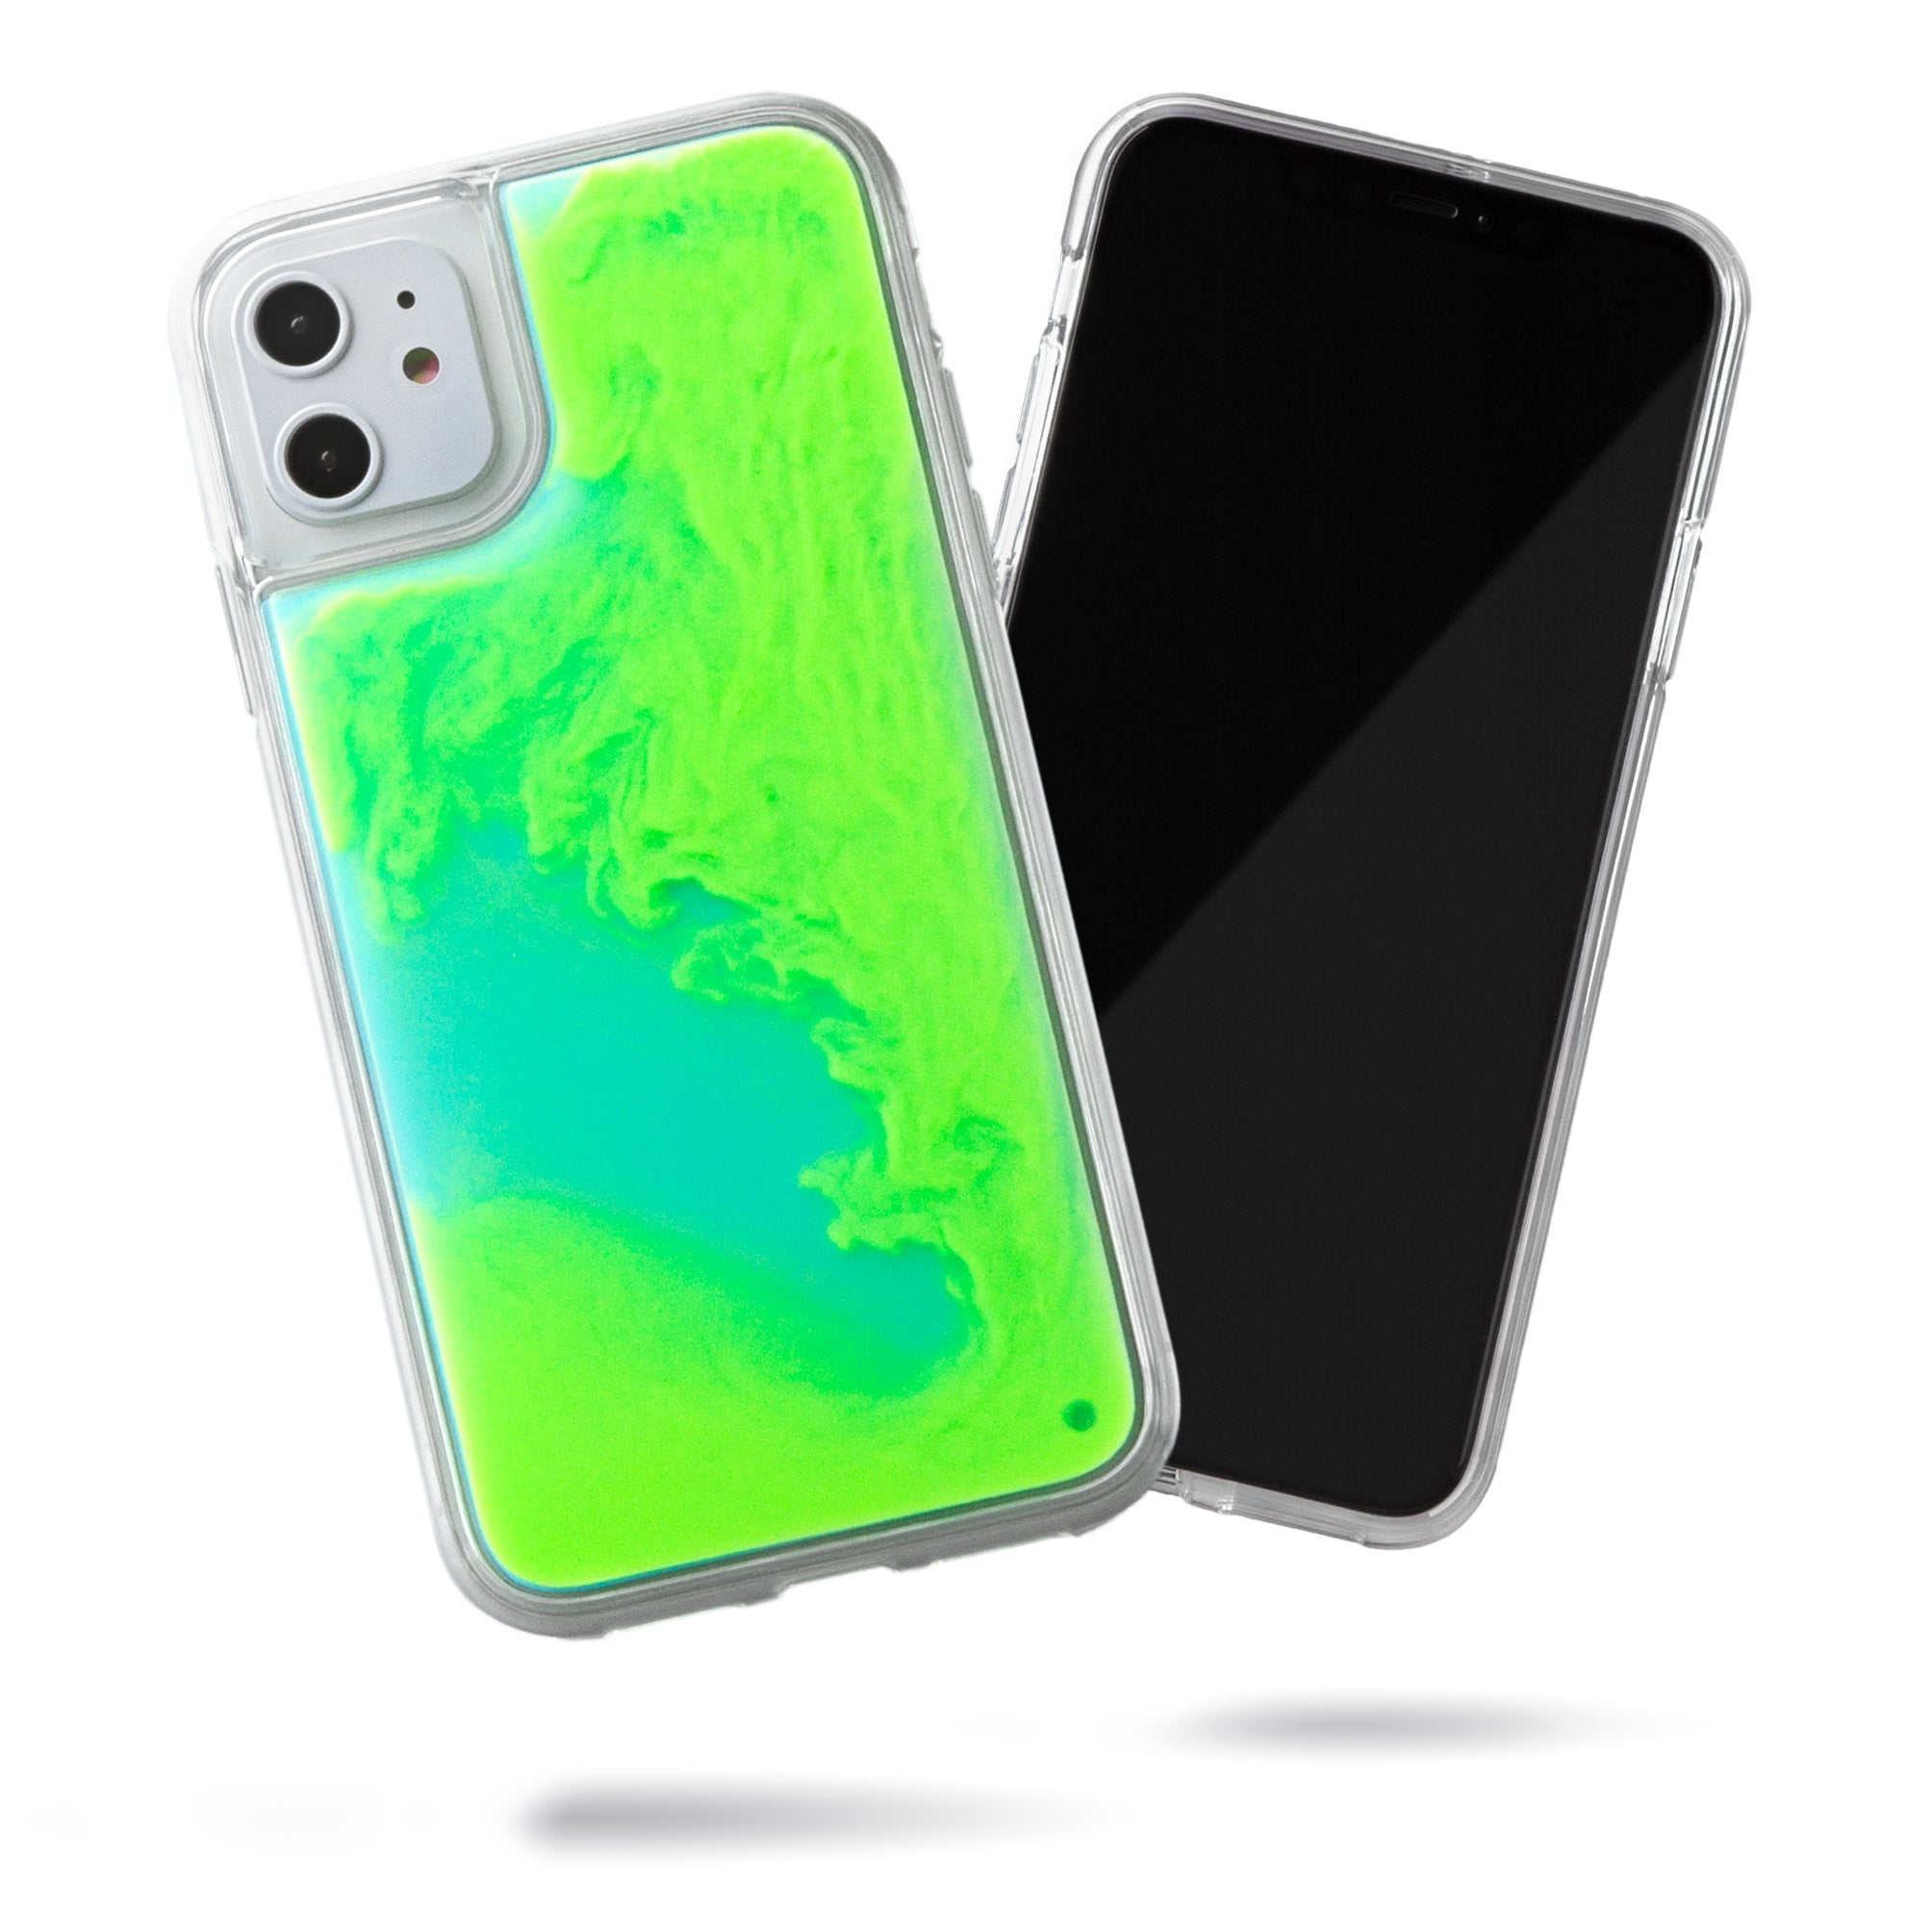 Neon Sand iPhone 11 Case - Mint and Neon Green Glow